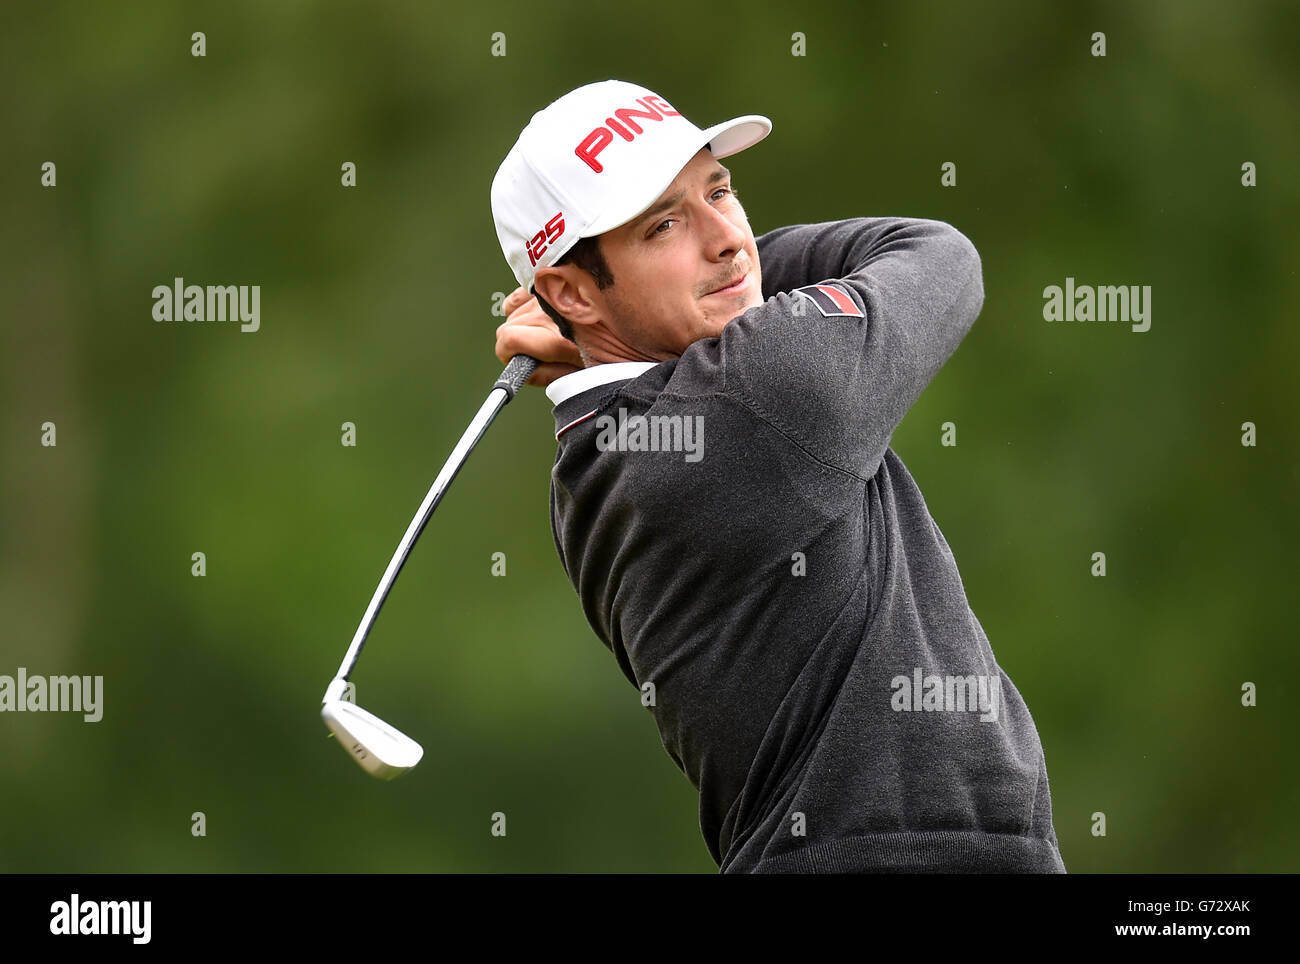 Golf - 2014 BMW PGA Championship - Day Two - Wentworth Golf Club - Stock Image